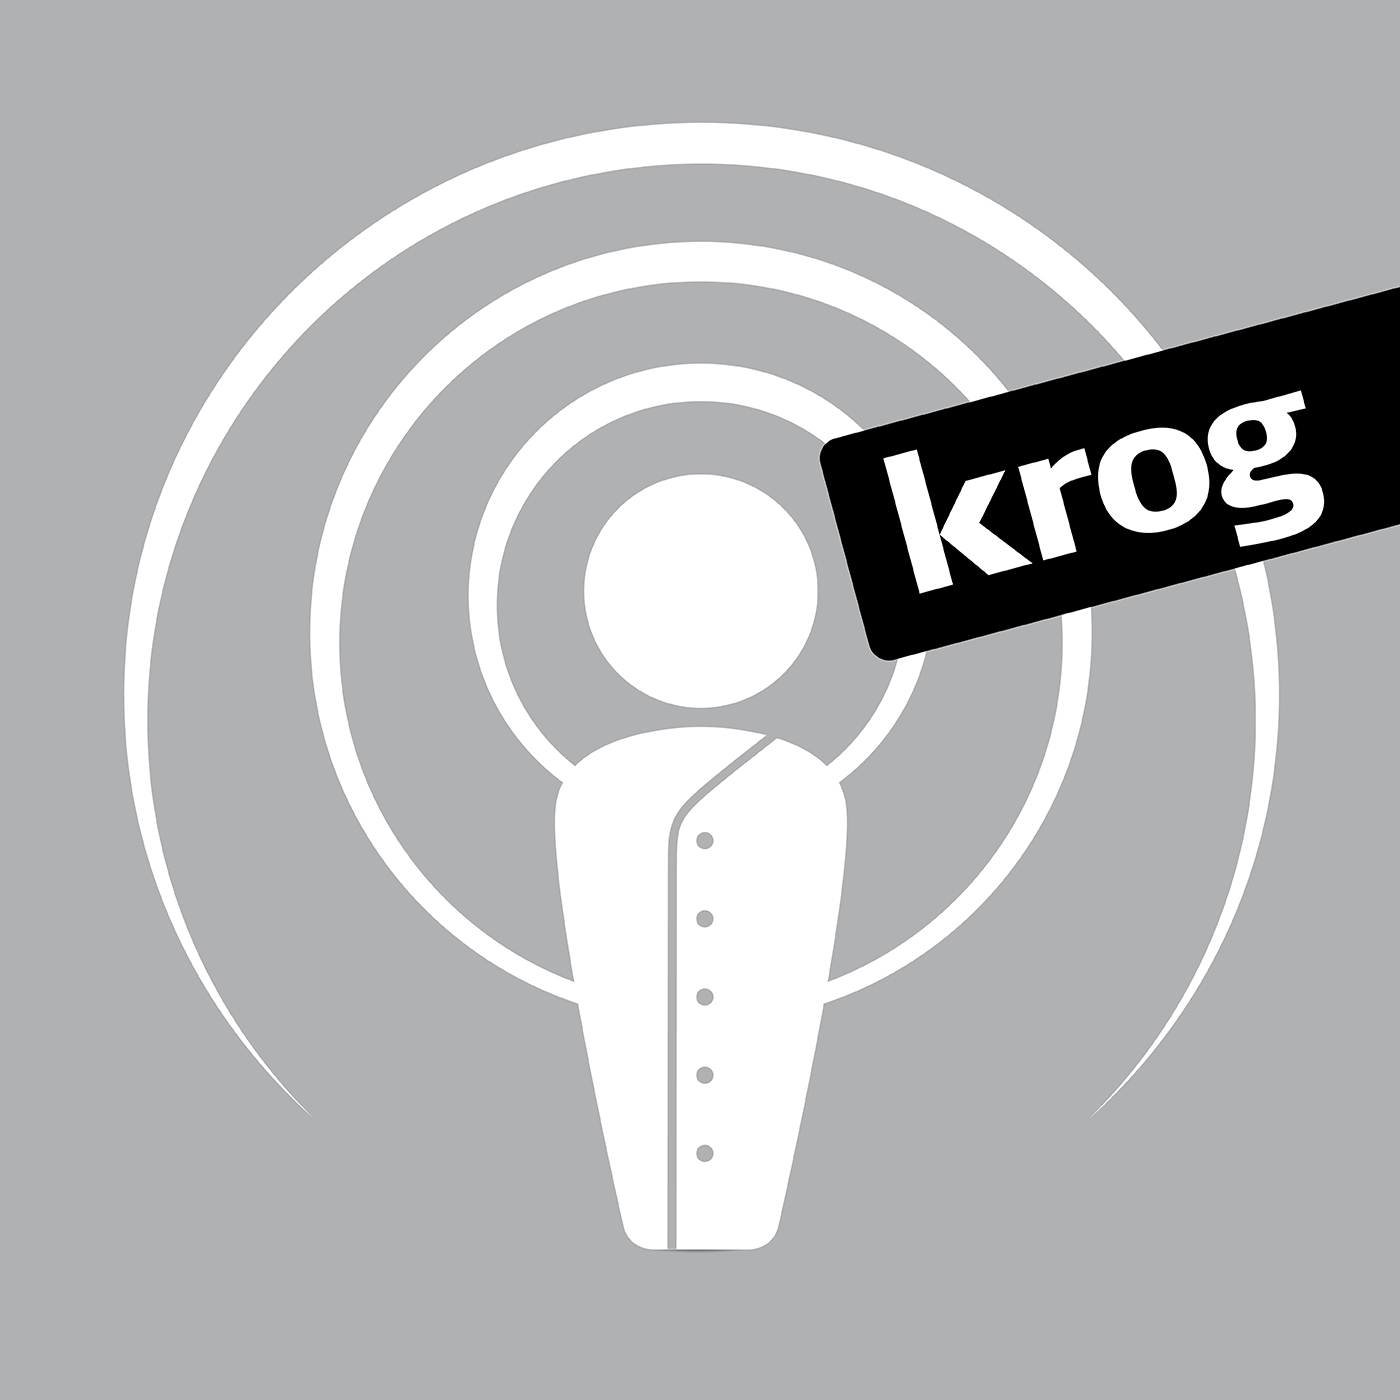 Podcast_icon_grey_krog